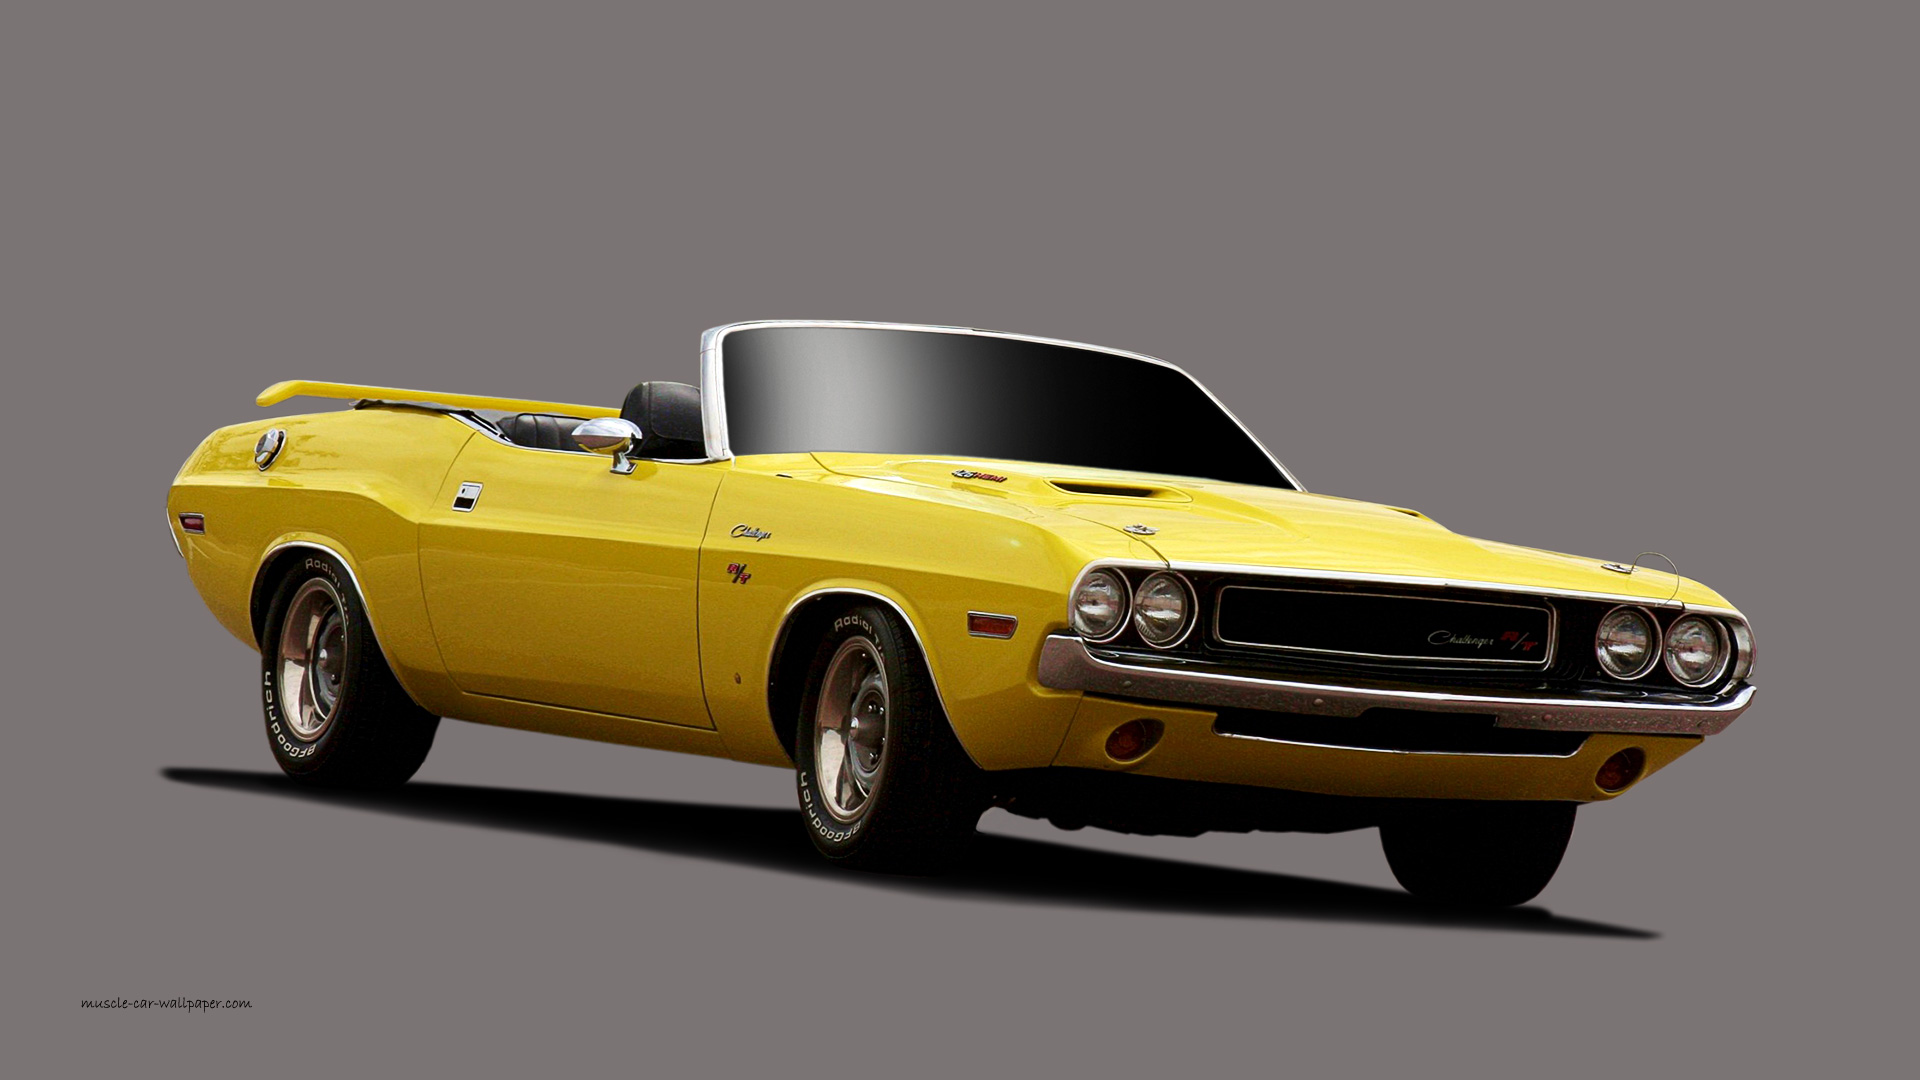 1970 Dodge Challenger Wallpaper Picture High Resolution 1920 02 1920x1080